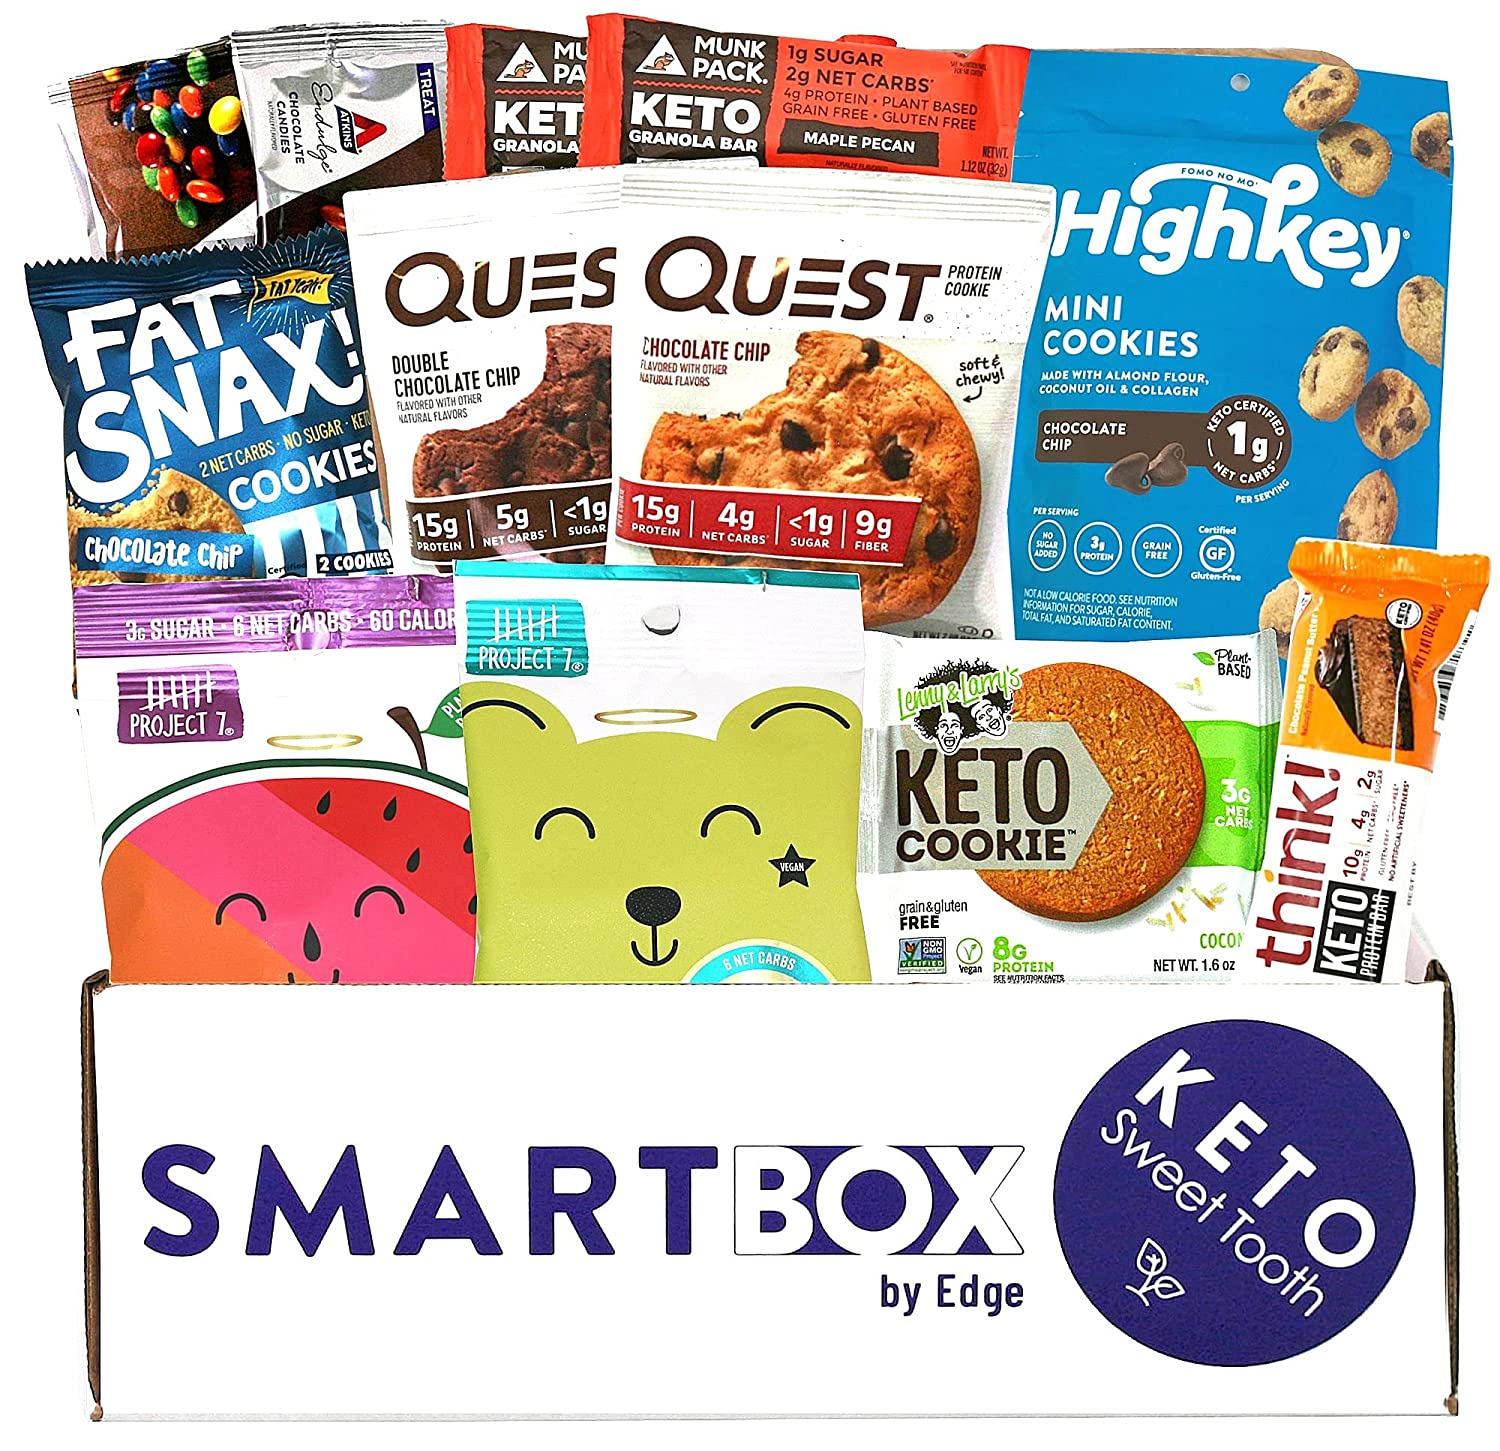 Keto Sweets and Desserts Snack Box and Care Package   Low Carb and Keto Friendly Gift or Snack Set   Packed with Low Carb, Low Glycemic Snacks!